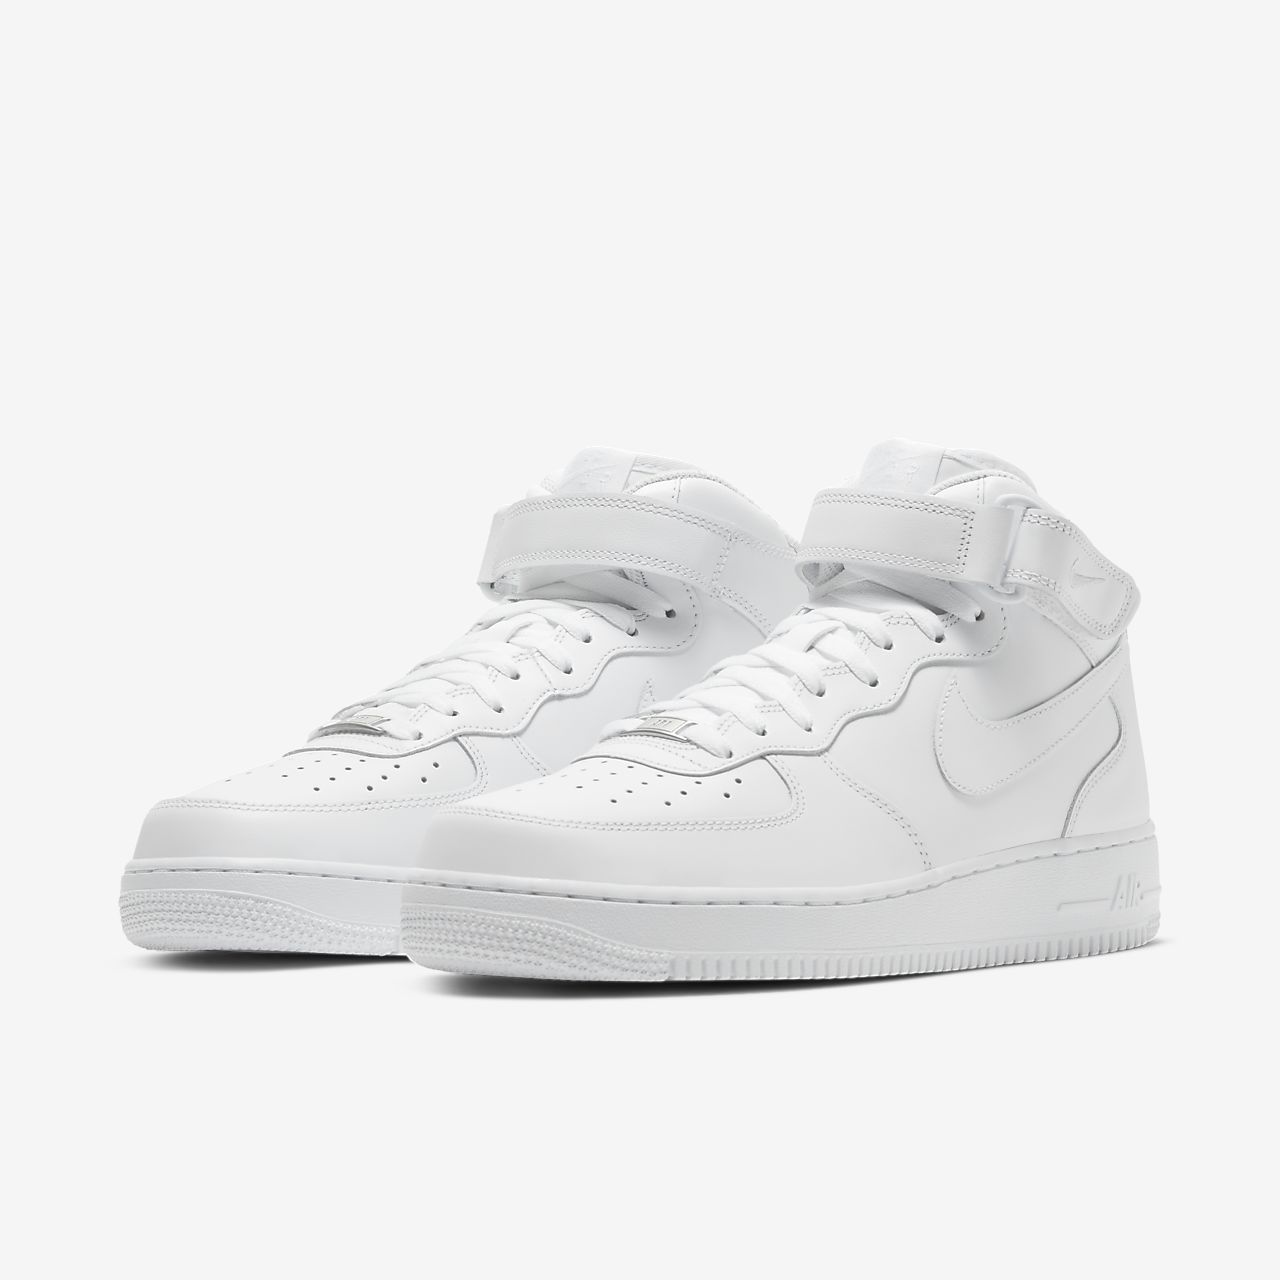 sale retailer 22d8b 0f6b3 Chaussure Nike Air Force 1 Mid \u002707 pour Homme.